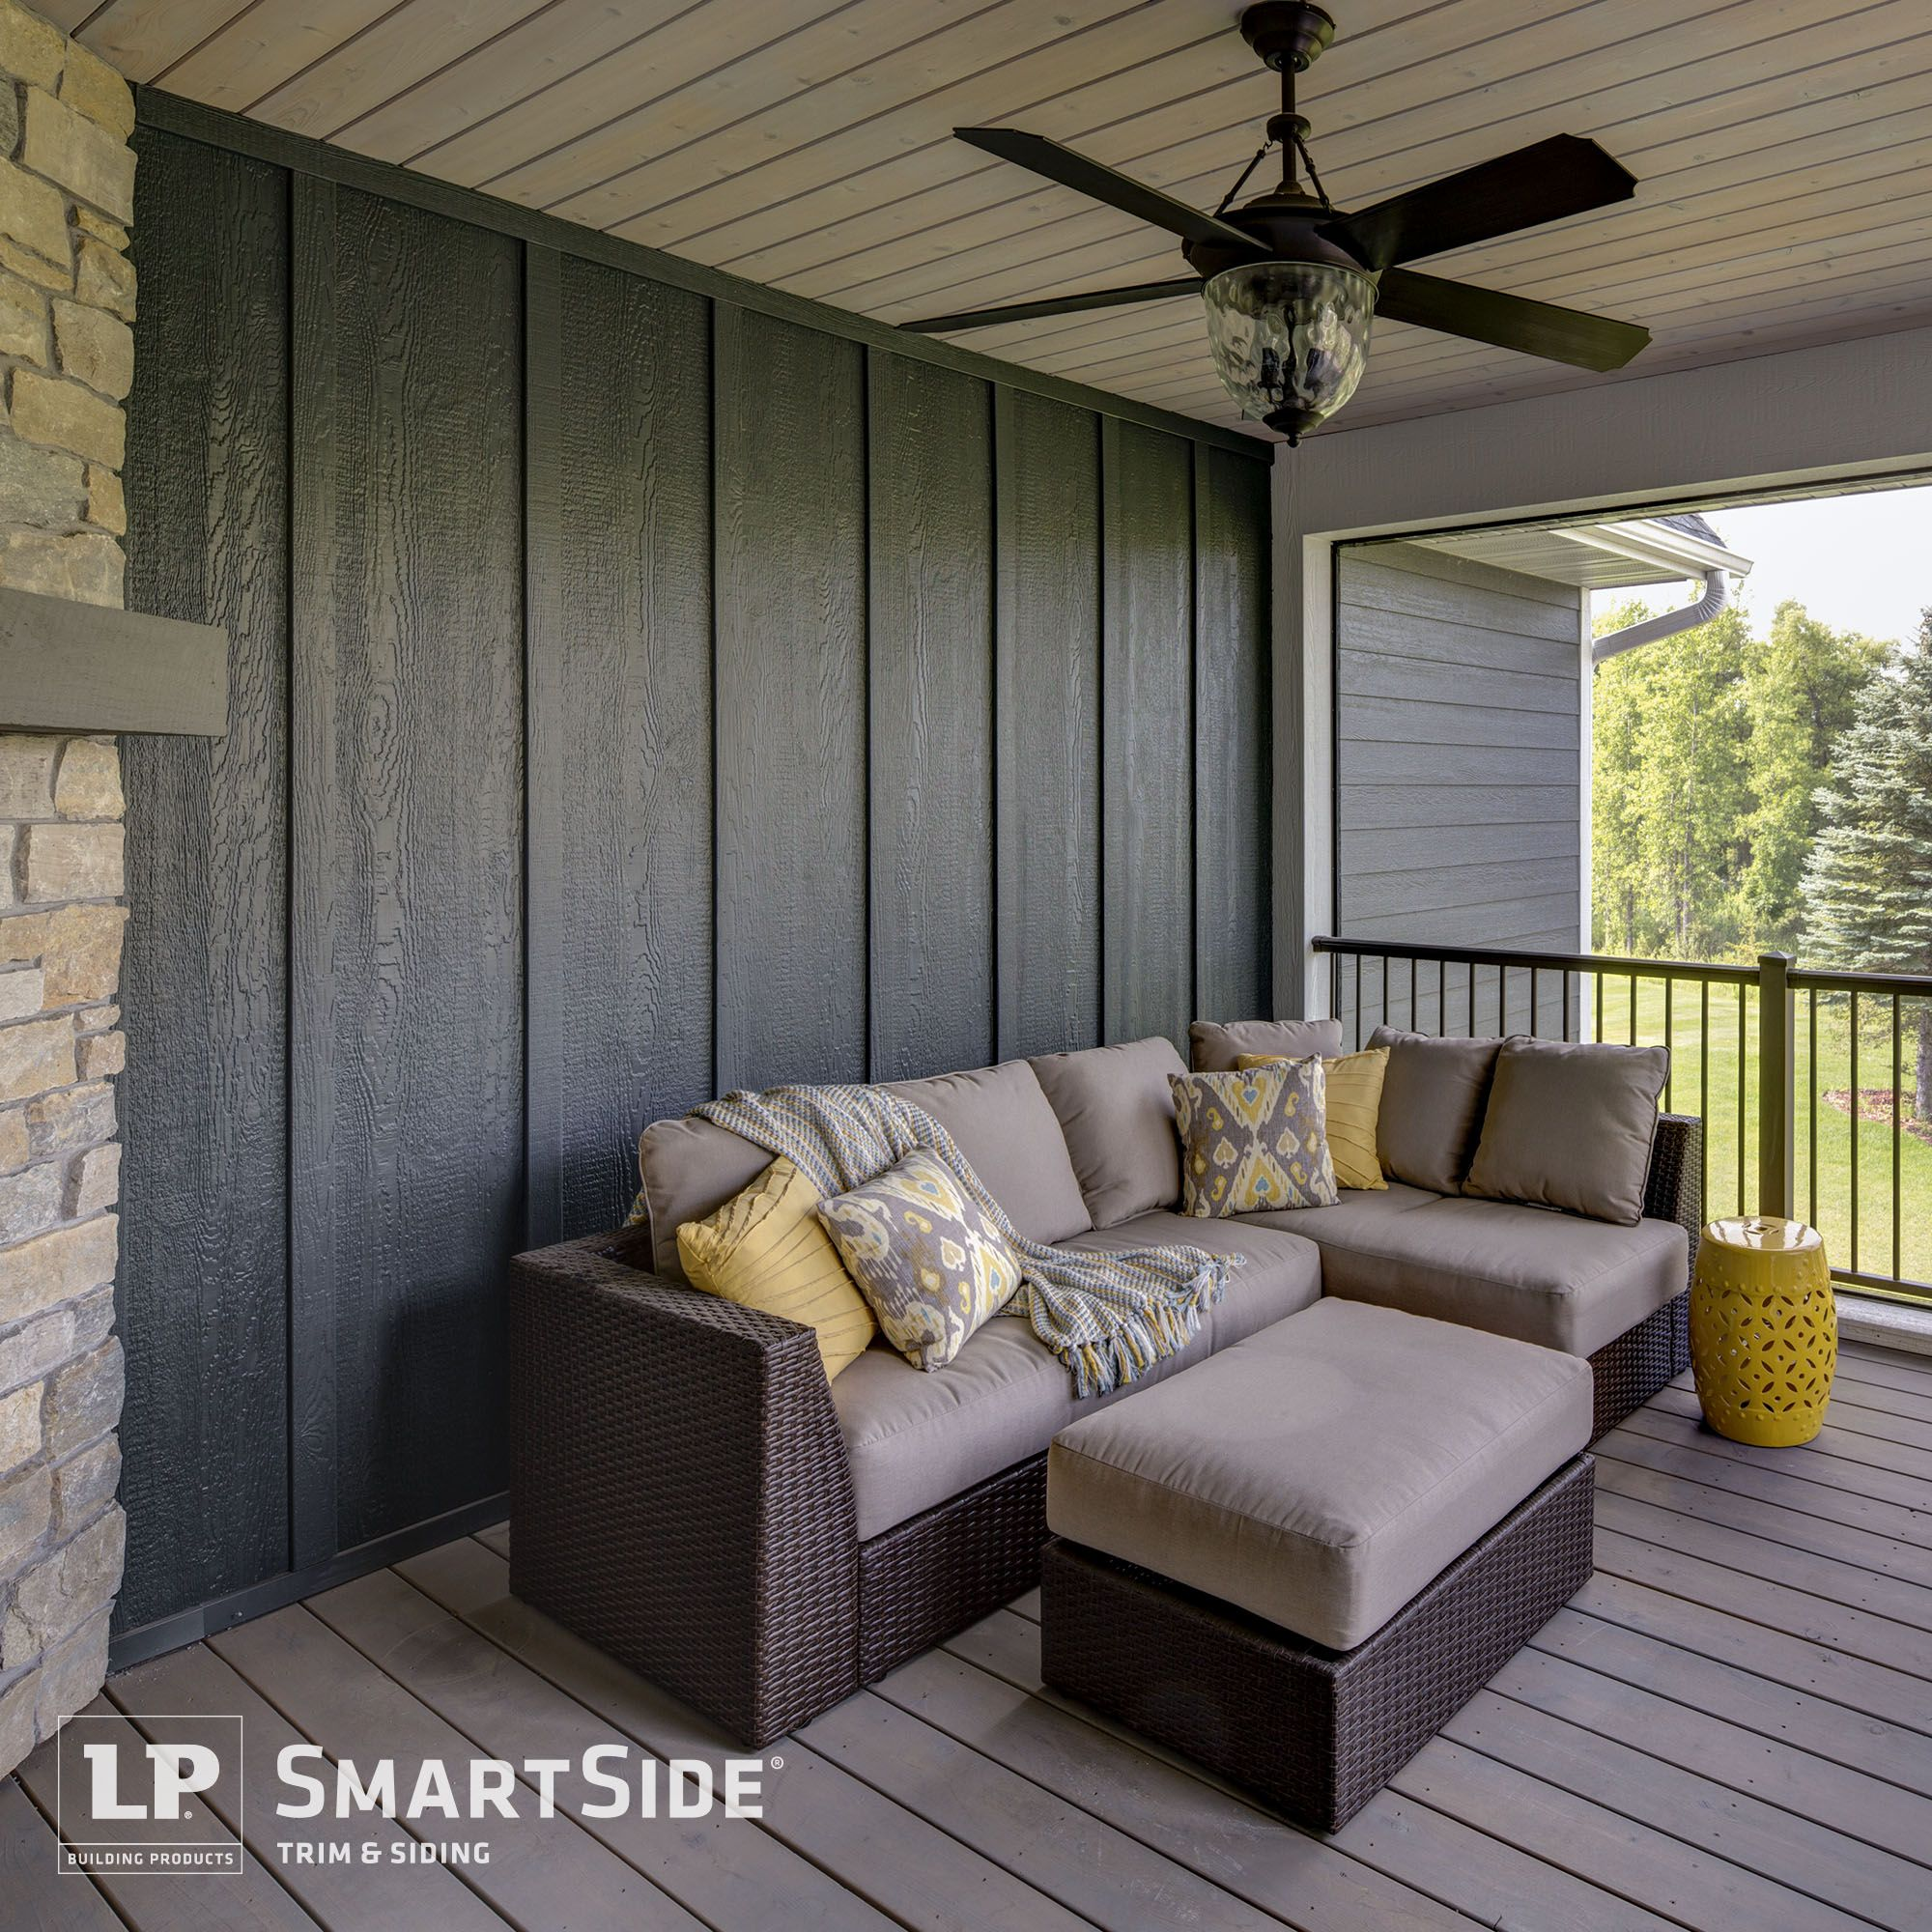 A porch outfitted with lp smartside trim and panel siding for Lp smartside board and batten